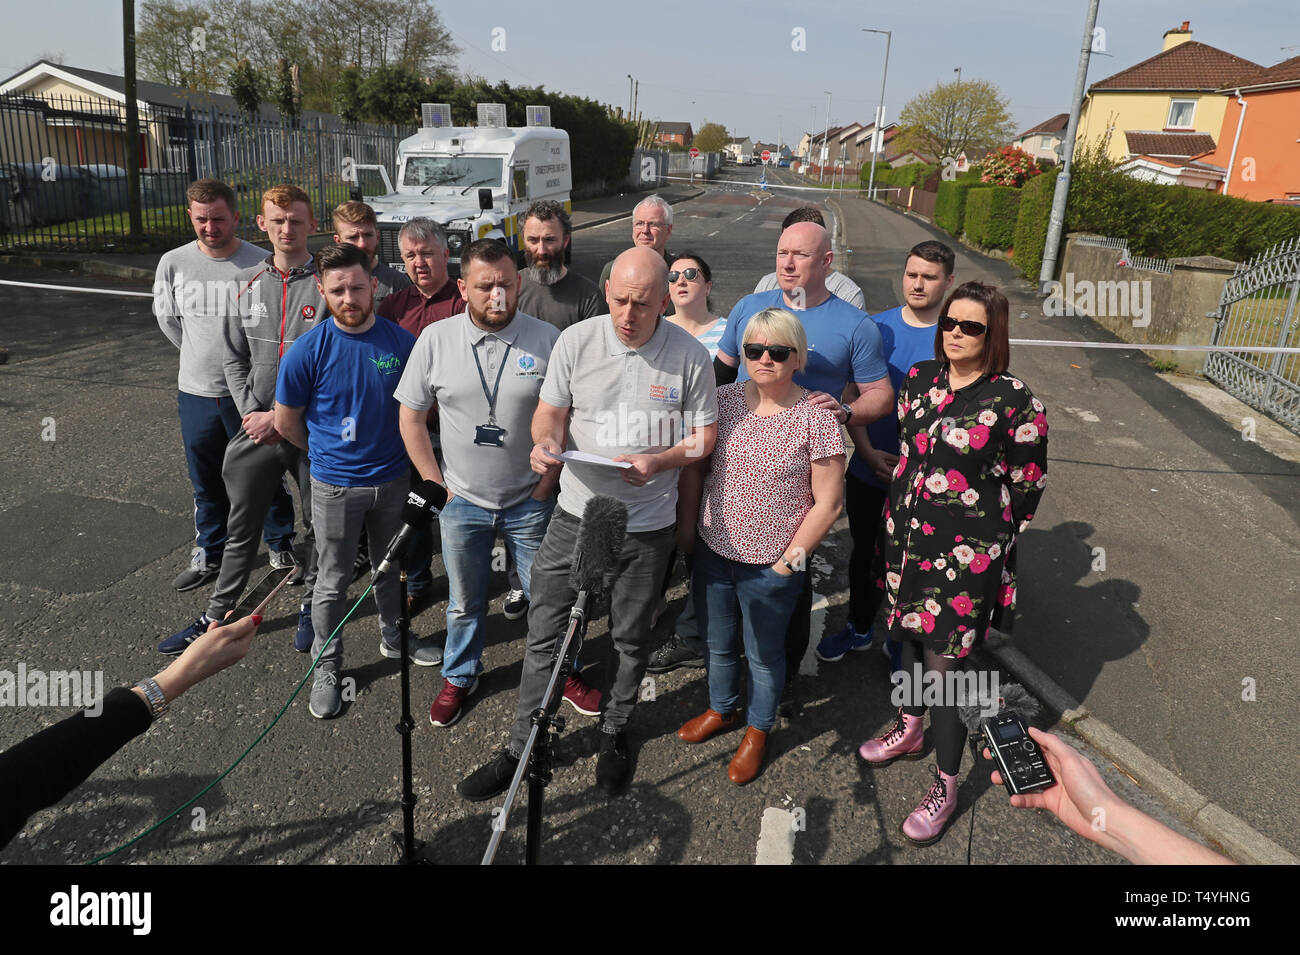 """George McGowan speaks on behalf of members of the community at the scene in Londonderry, Northern Ireland, where 29-year-old journalist Lyra McKee was shot and killed when guns were fired and petrol bombs were thrown in what police are treating as a """"terrorist incident"""". Stock Photo"""